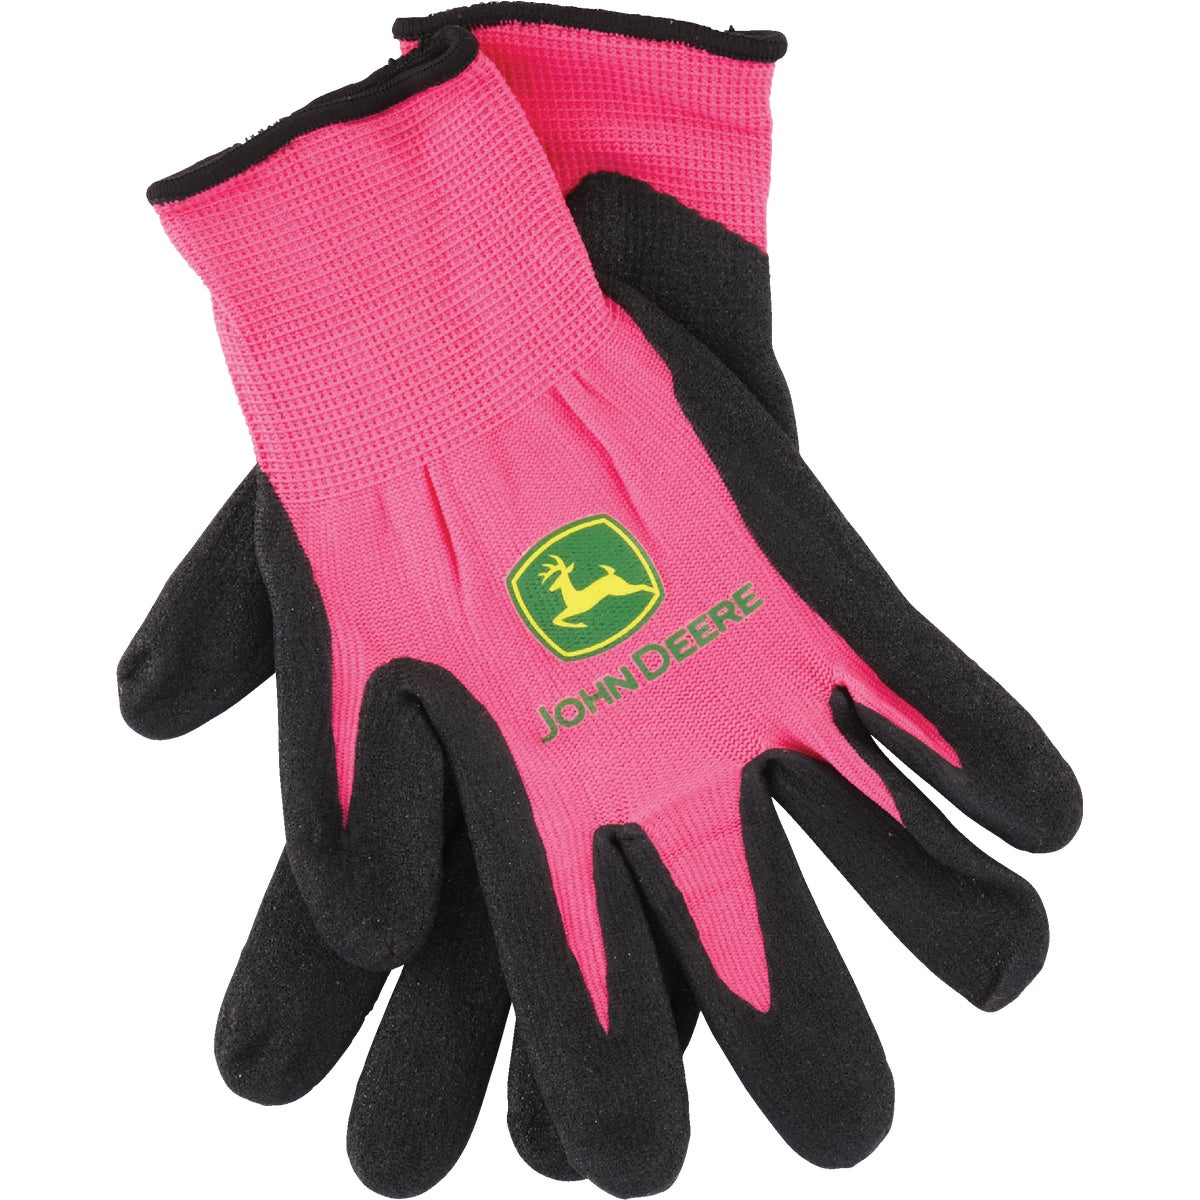 LDY NITRILE PALM GLOVE - JD00021/W by West Chester Incom